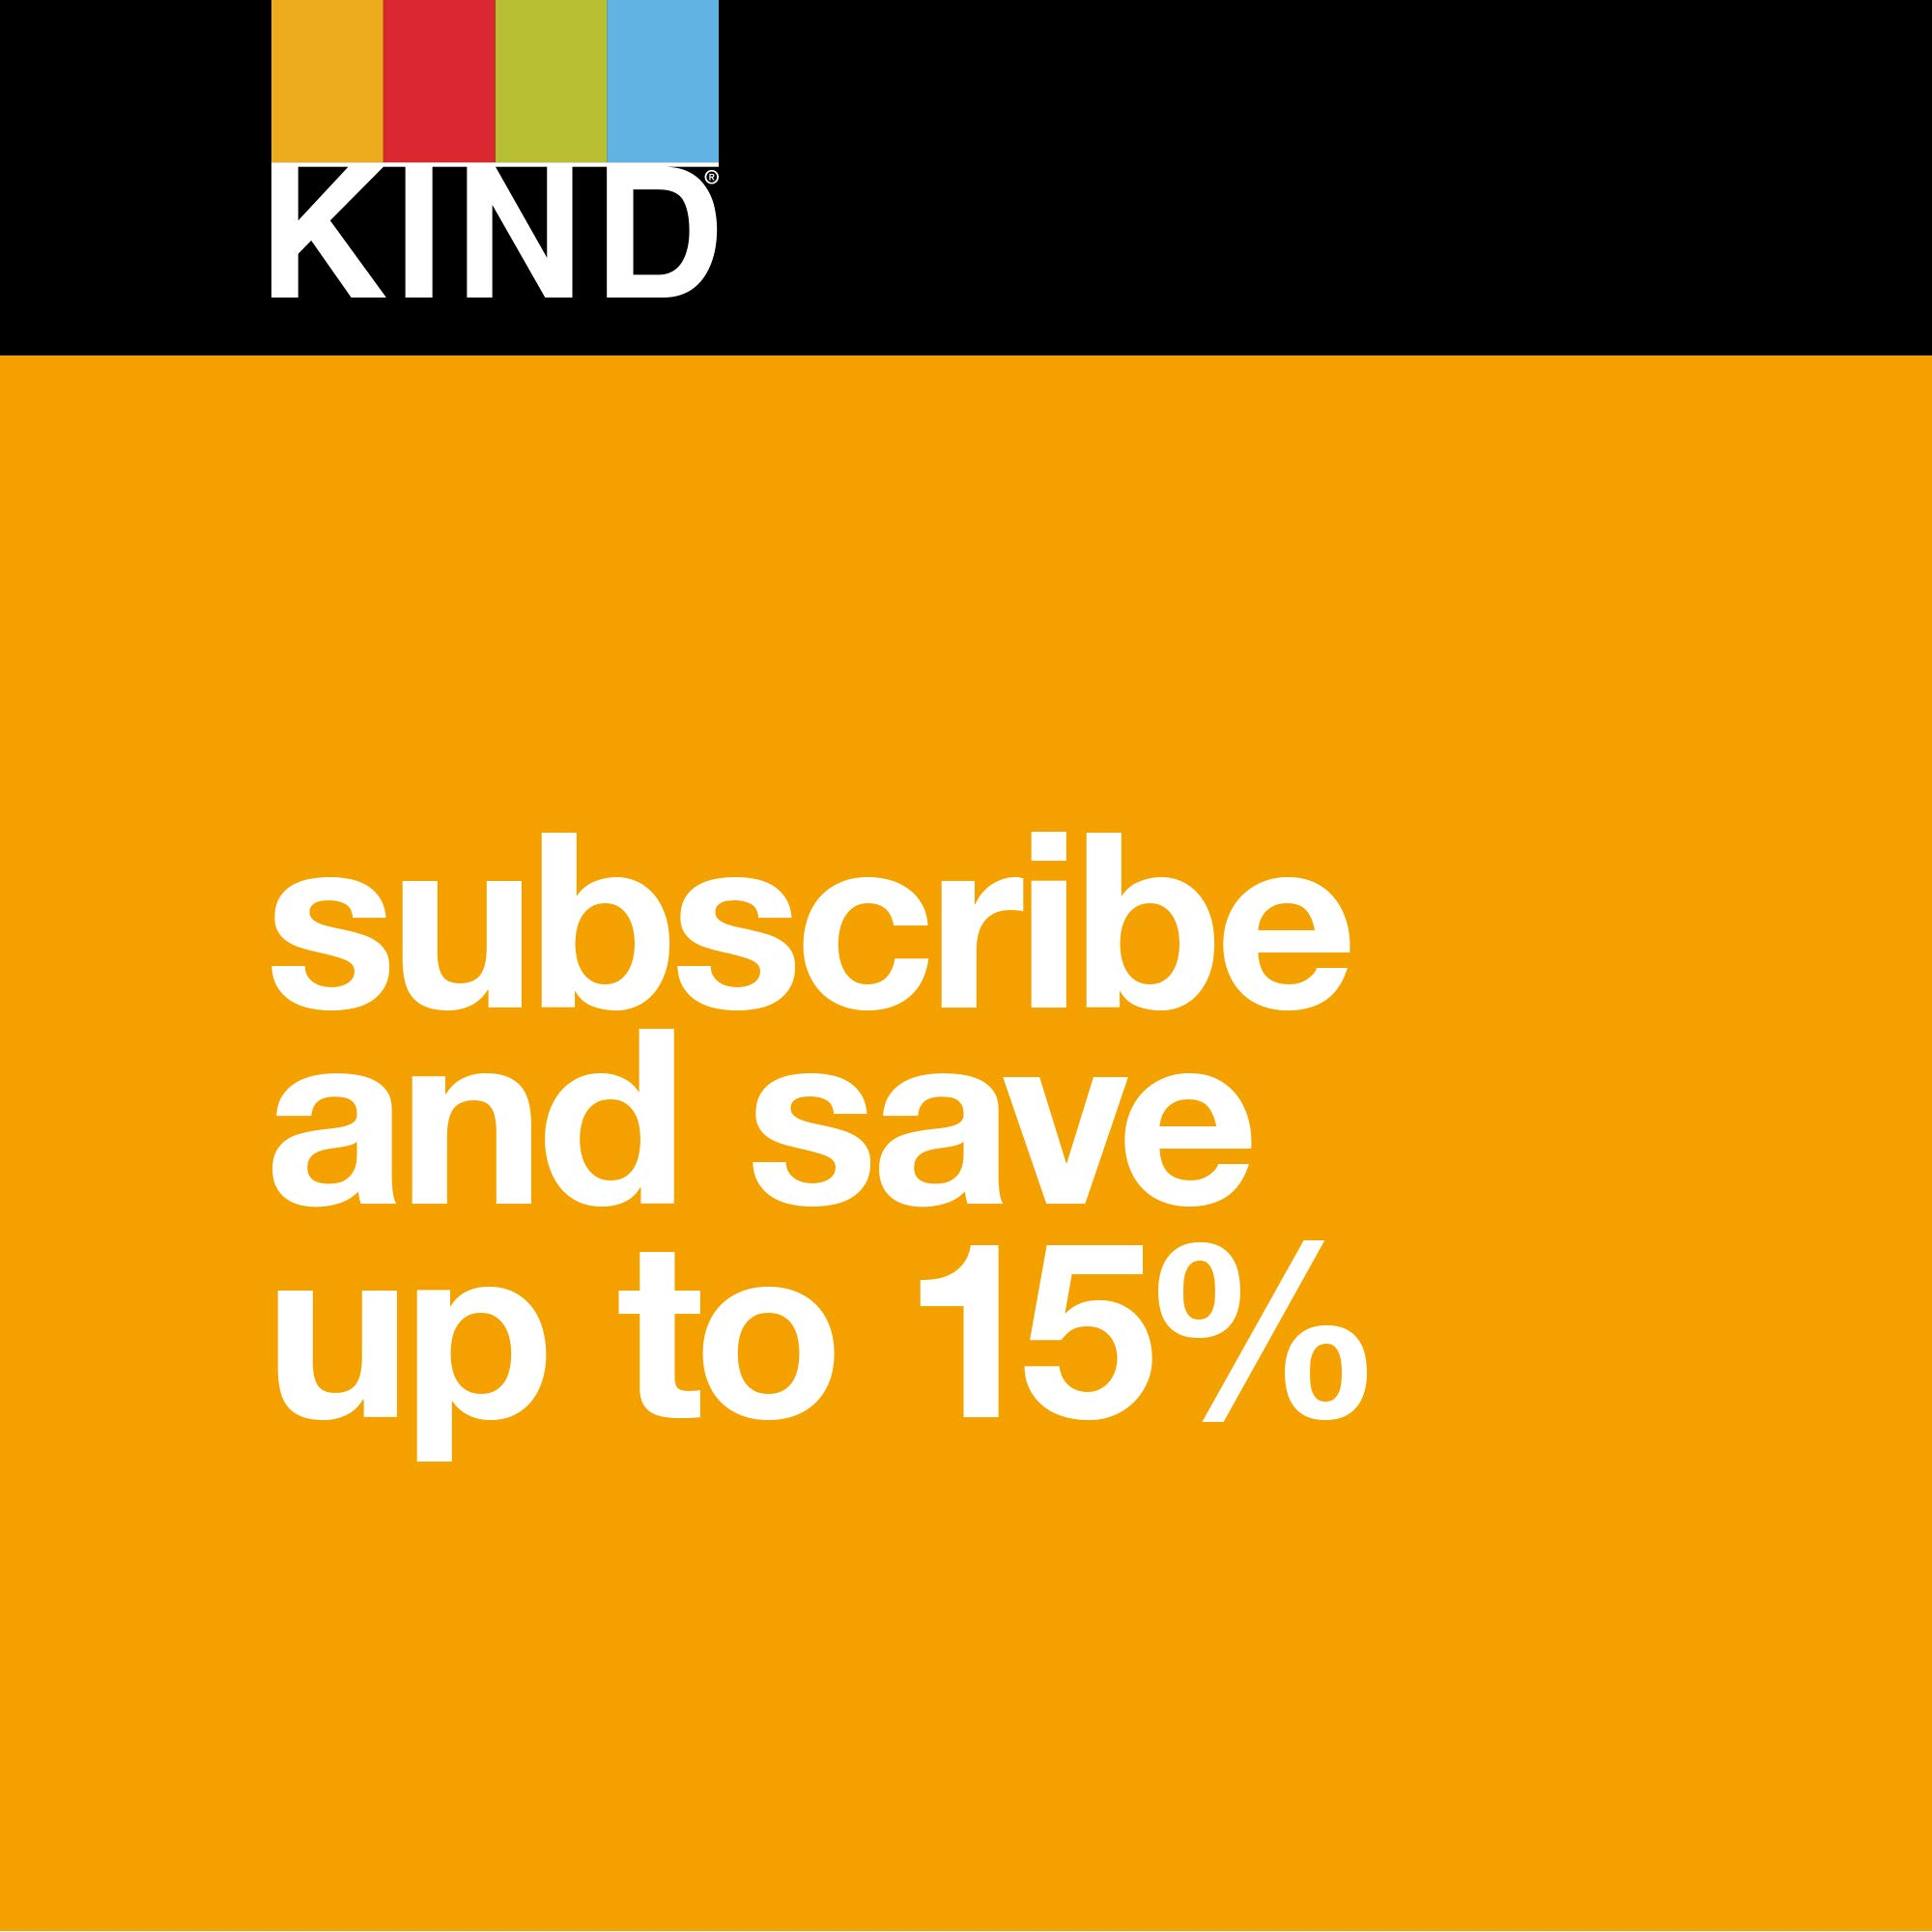 KIND Protein Bars, Toasted Caramel Nut, Gluten Free, 12g Protein,1.76oz, 12 count by KIND (Image #7)